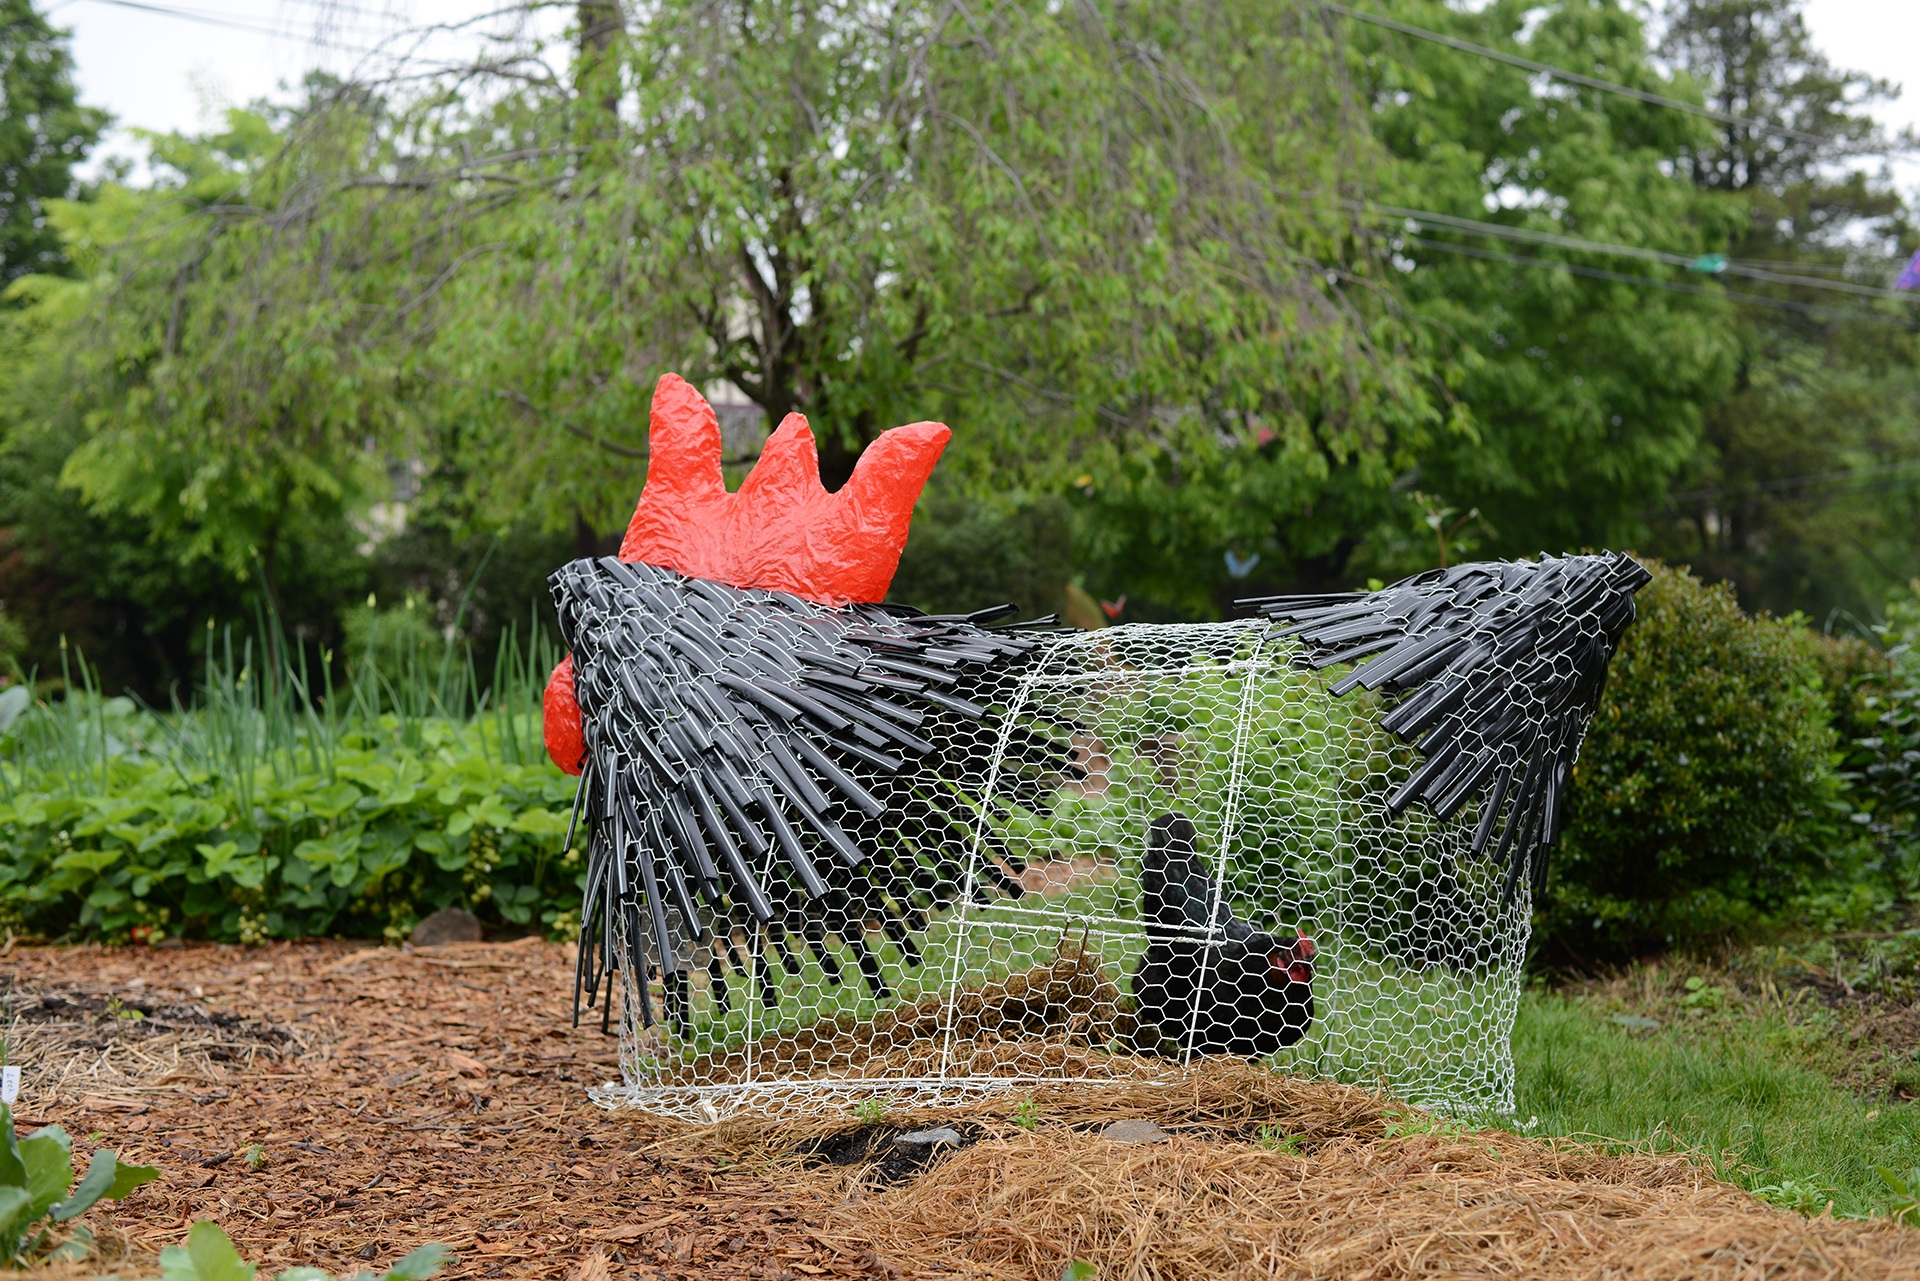 Meei-Ling Ng's The Chicken Tractor sculpture, Photo provided by Fairmount CDC